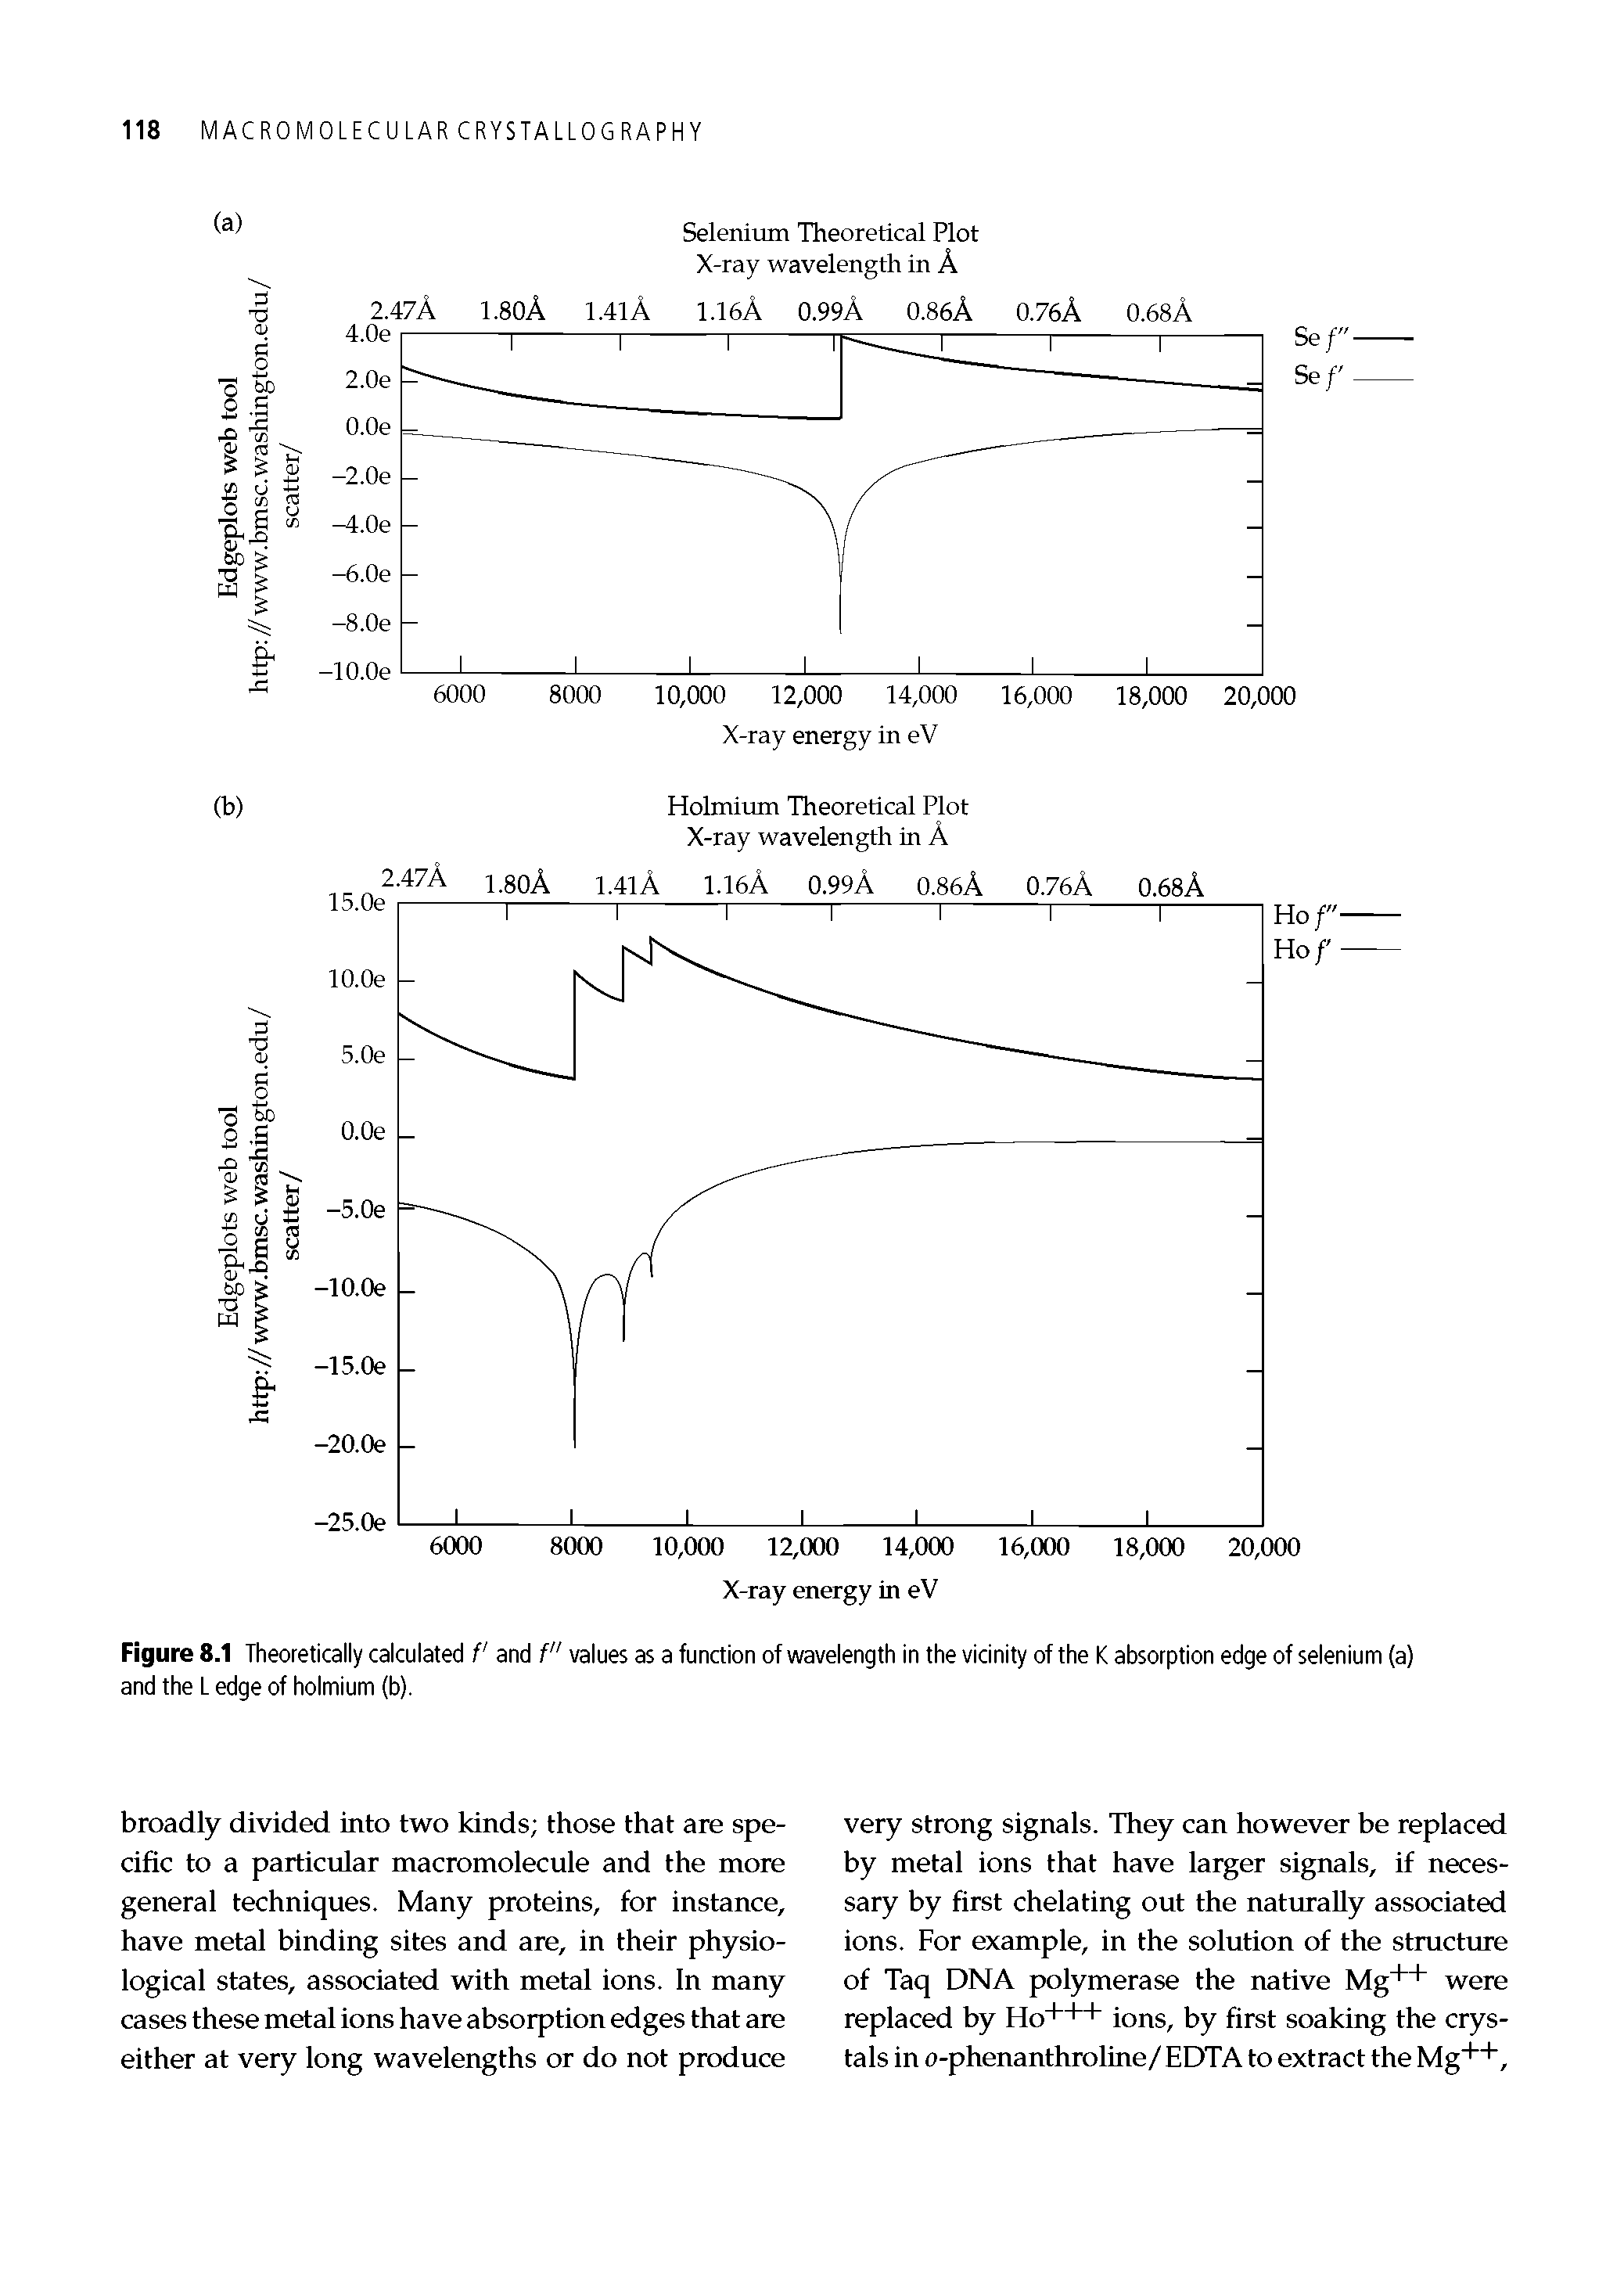 "Figure 8.1 Theoretically calculated f and f"" values as a function of wavelength in the vicinity of the K absorption edge of selenium (a) and the L edge of holmium (b)."